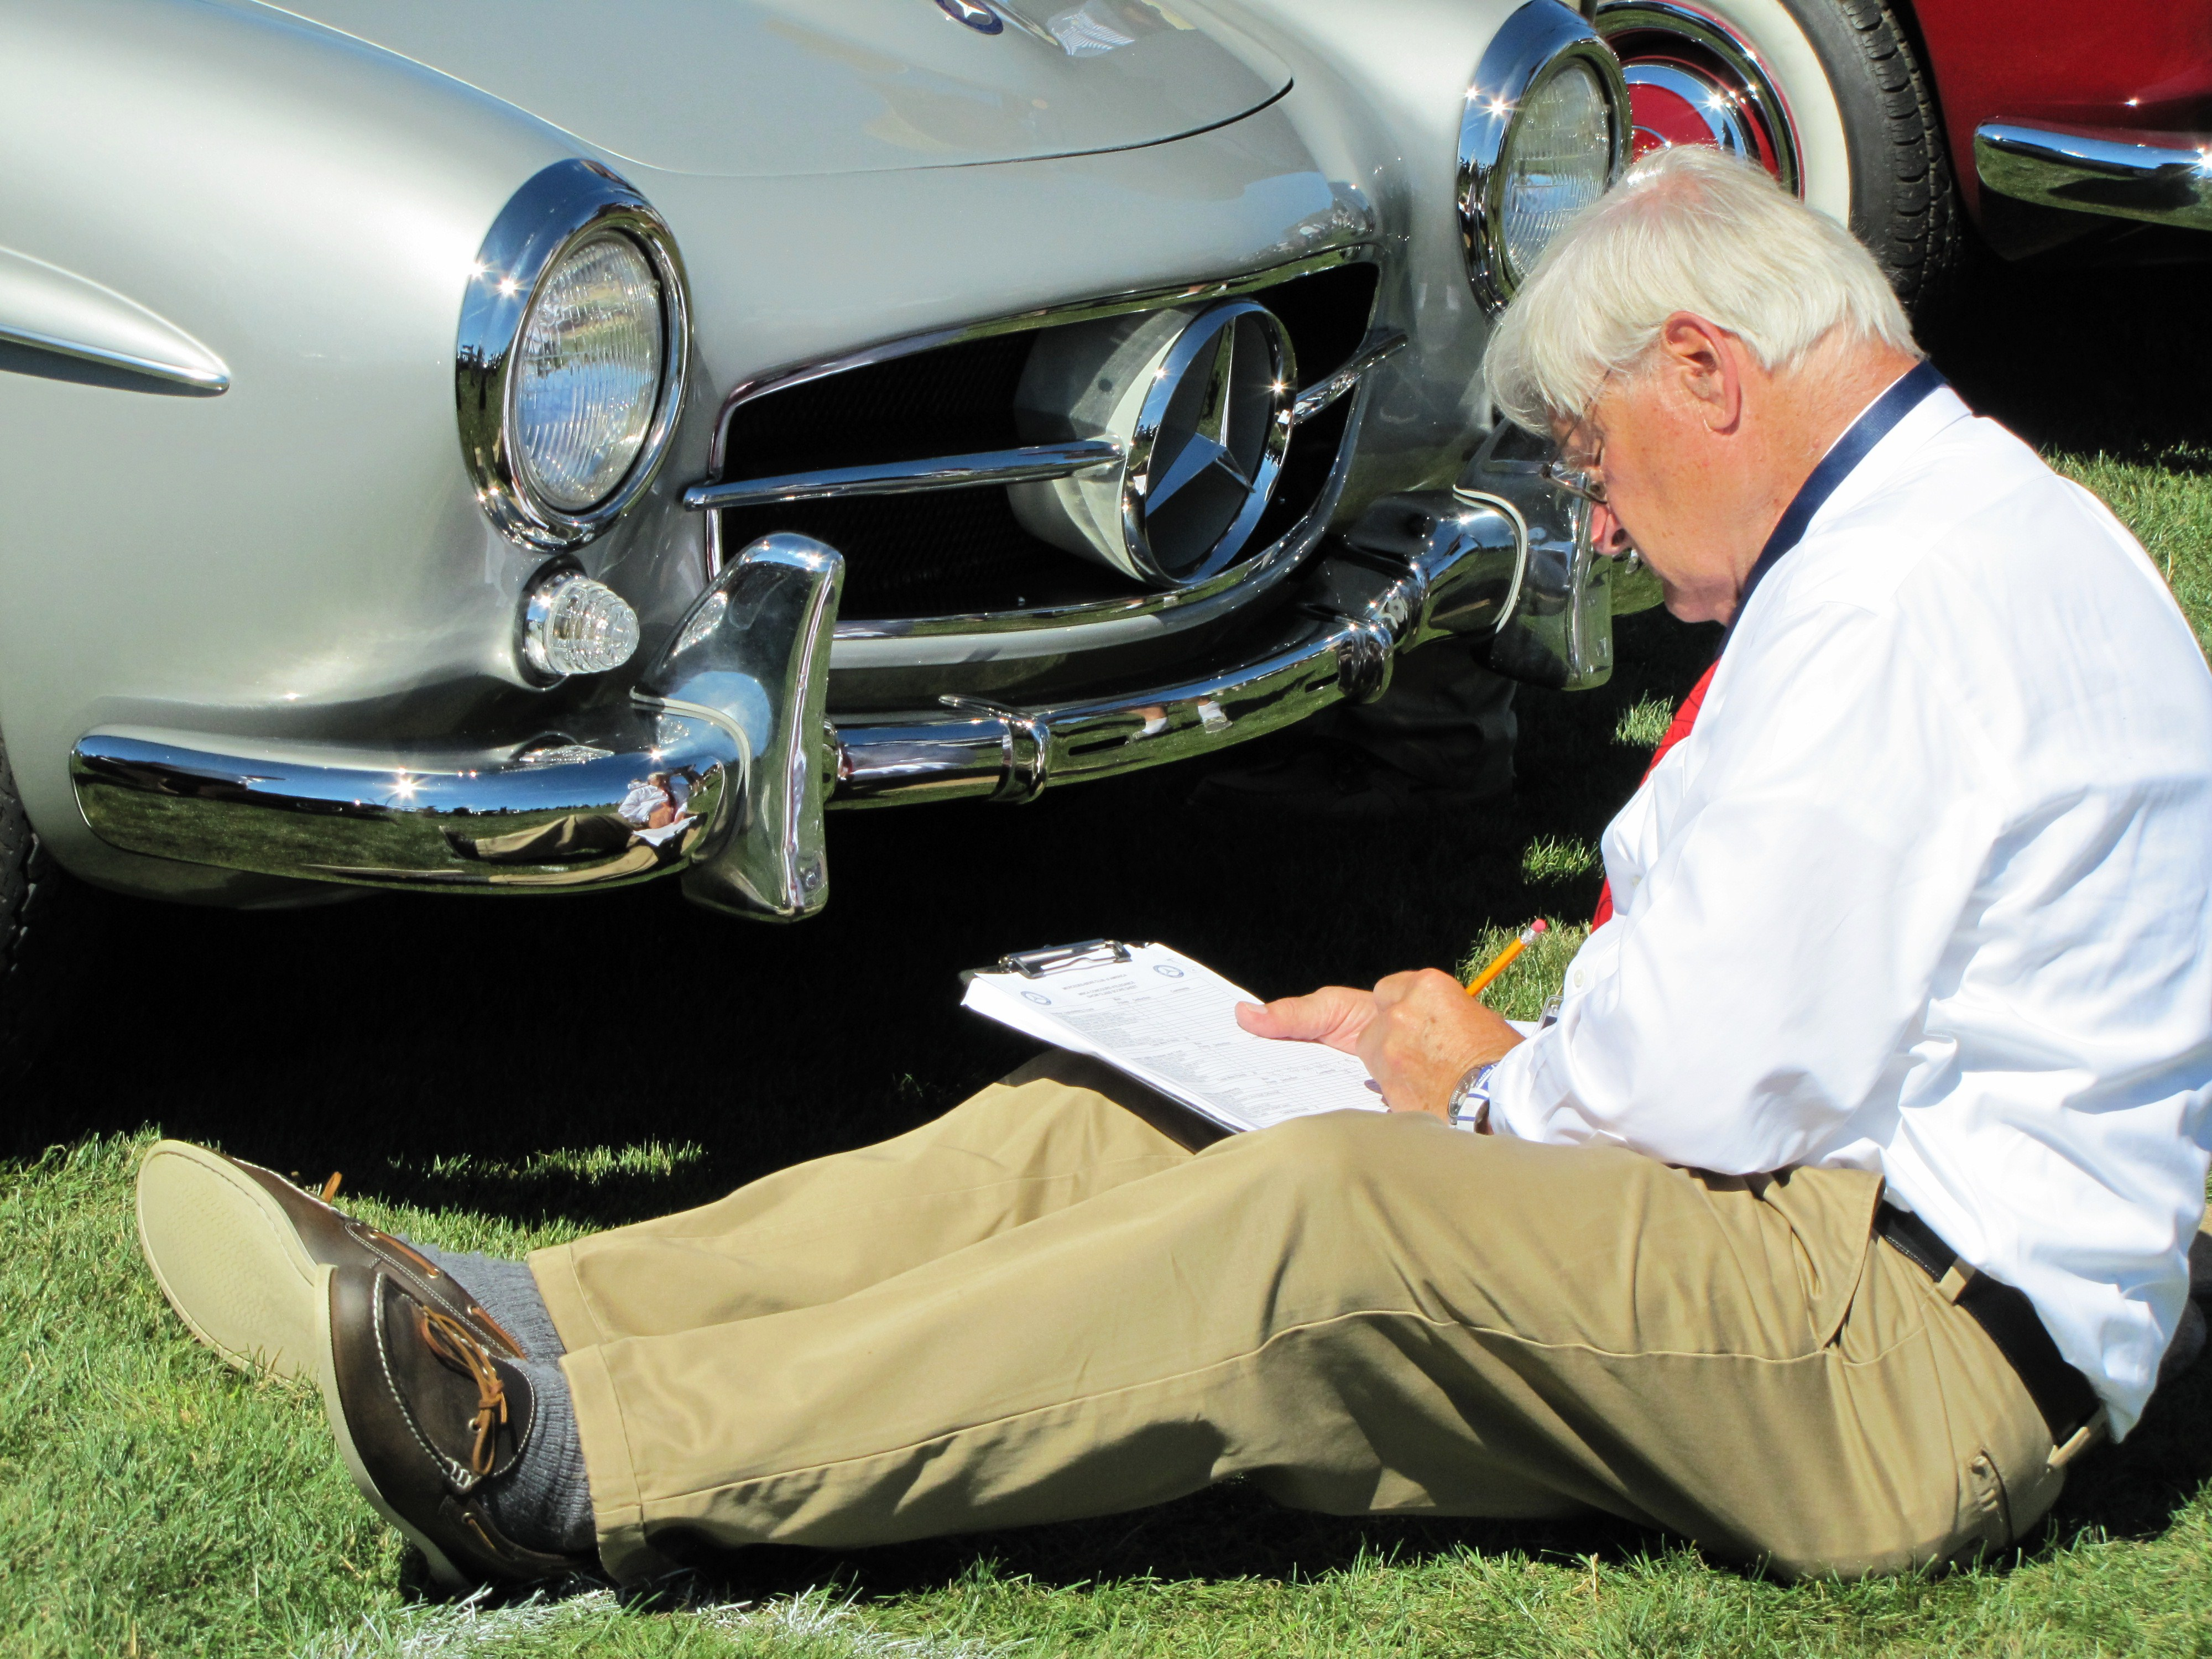 A concours Judge inspects a Mercedes-Benz 190SL at Legends of the Autobahn 2015 event | Bob Golfen photo